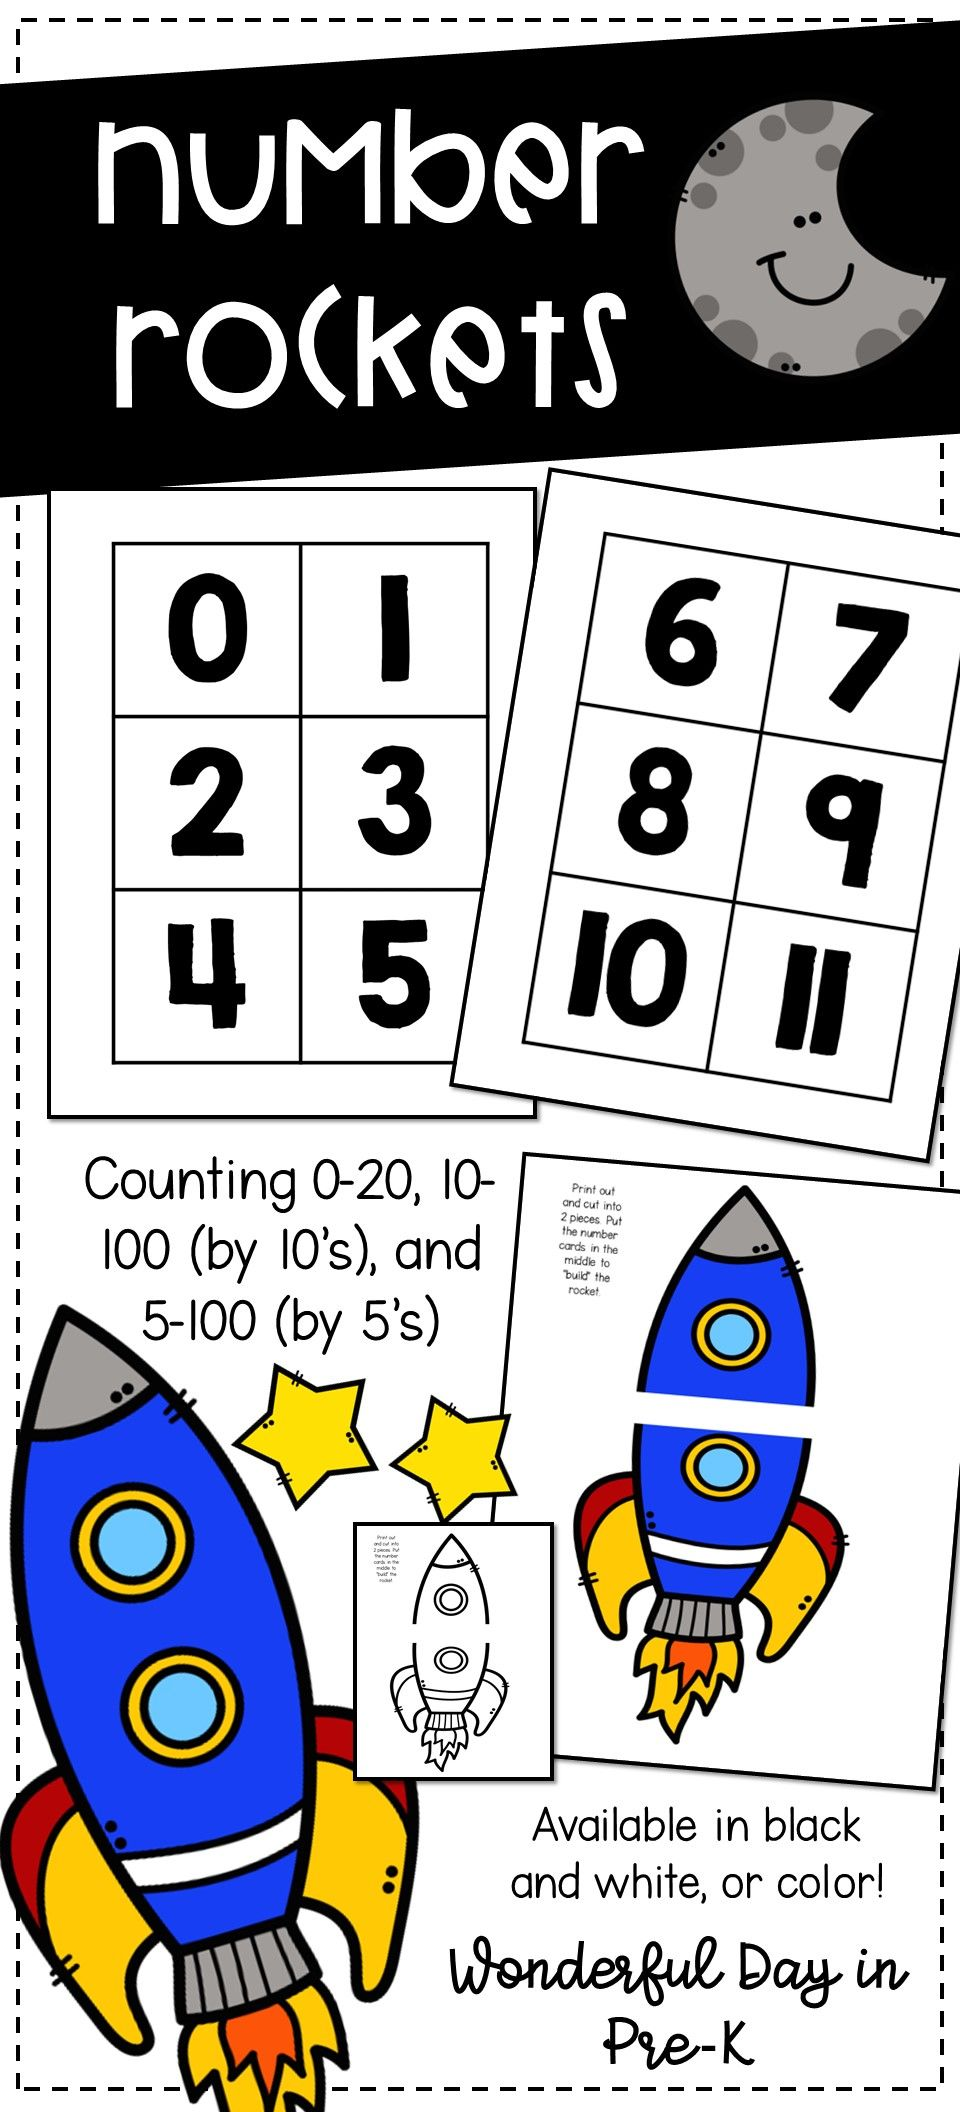 Number Rockets Counting Backwards Counting By 10 Space Theme